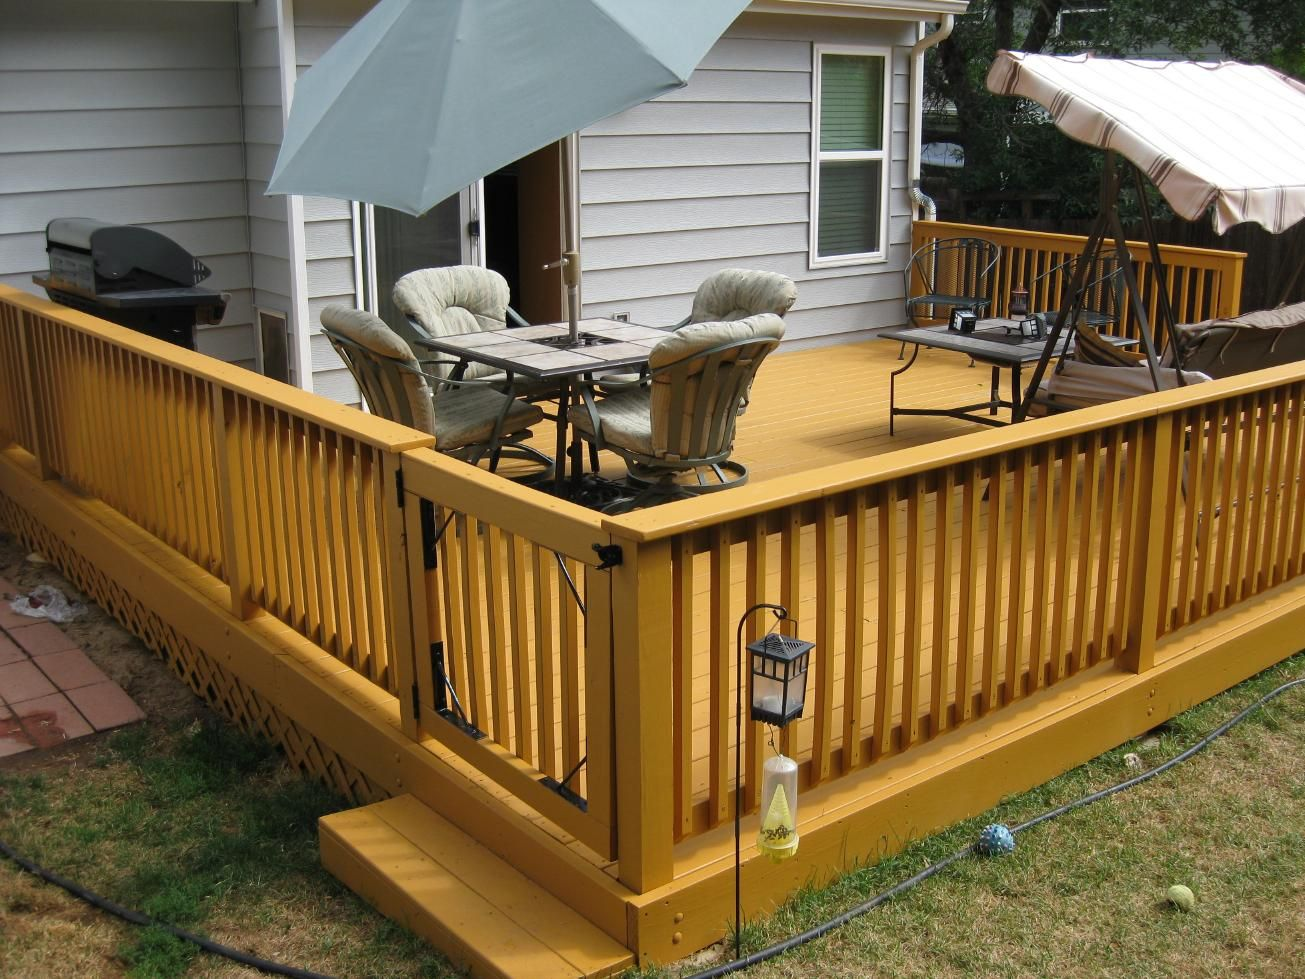 Ideas For Deck Design landscaping and outdoor building patio and deck design ideas wooden patio and deck design patio Deck Designs Custom Treated Deck Design Take A Walk Down Briar Street Deck Design Ideas